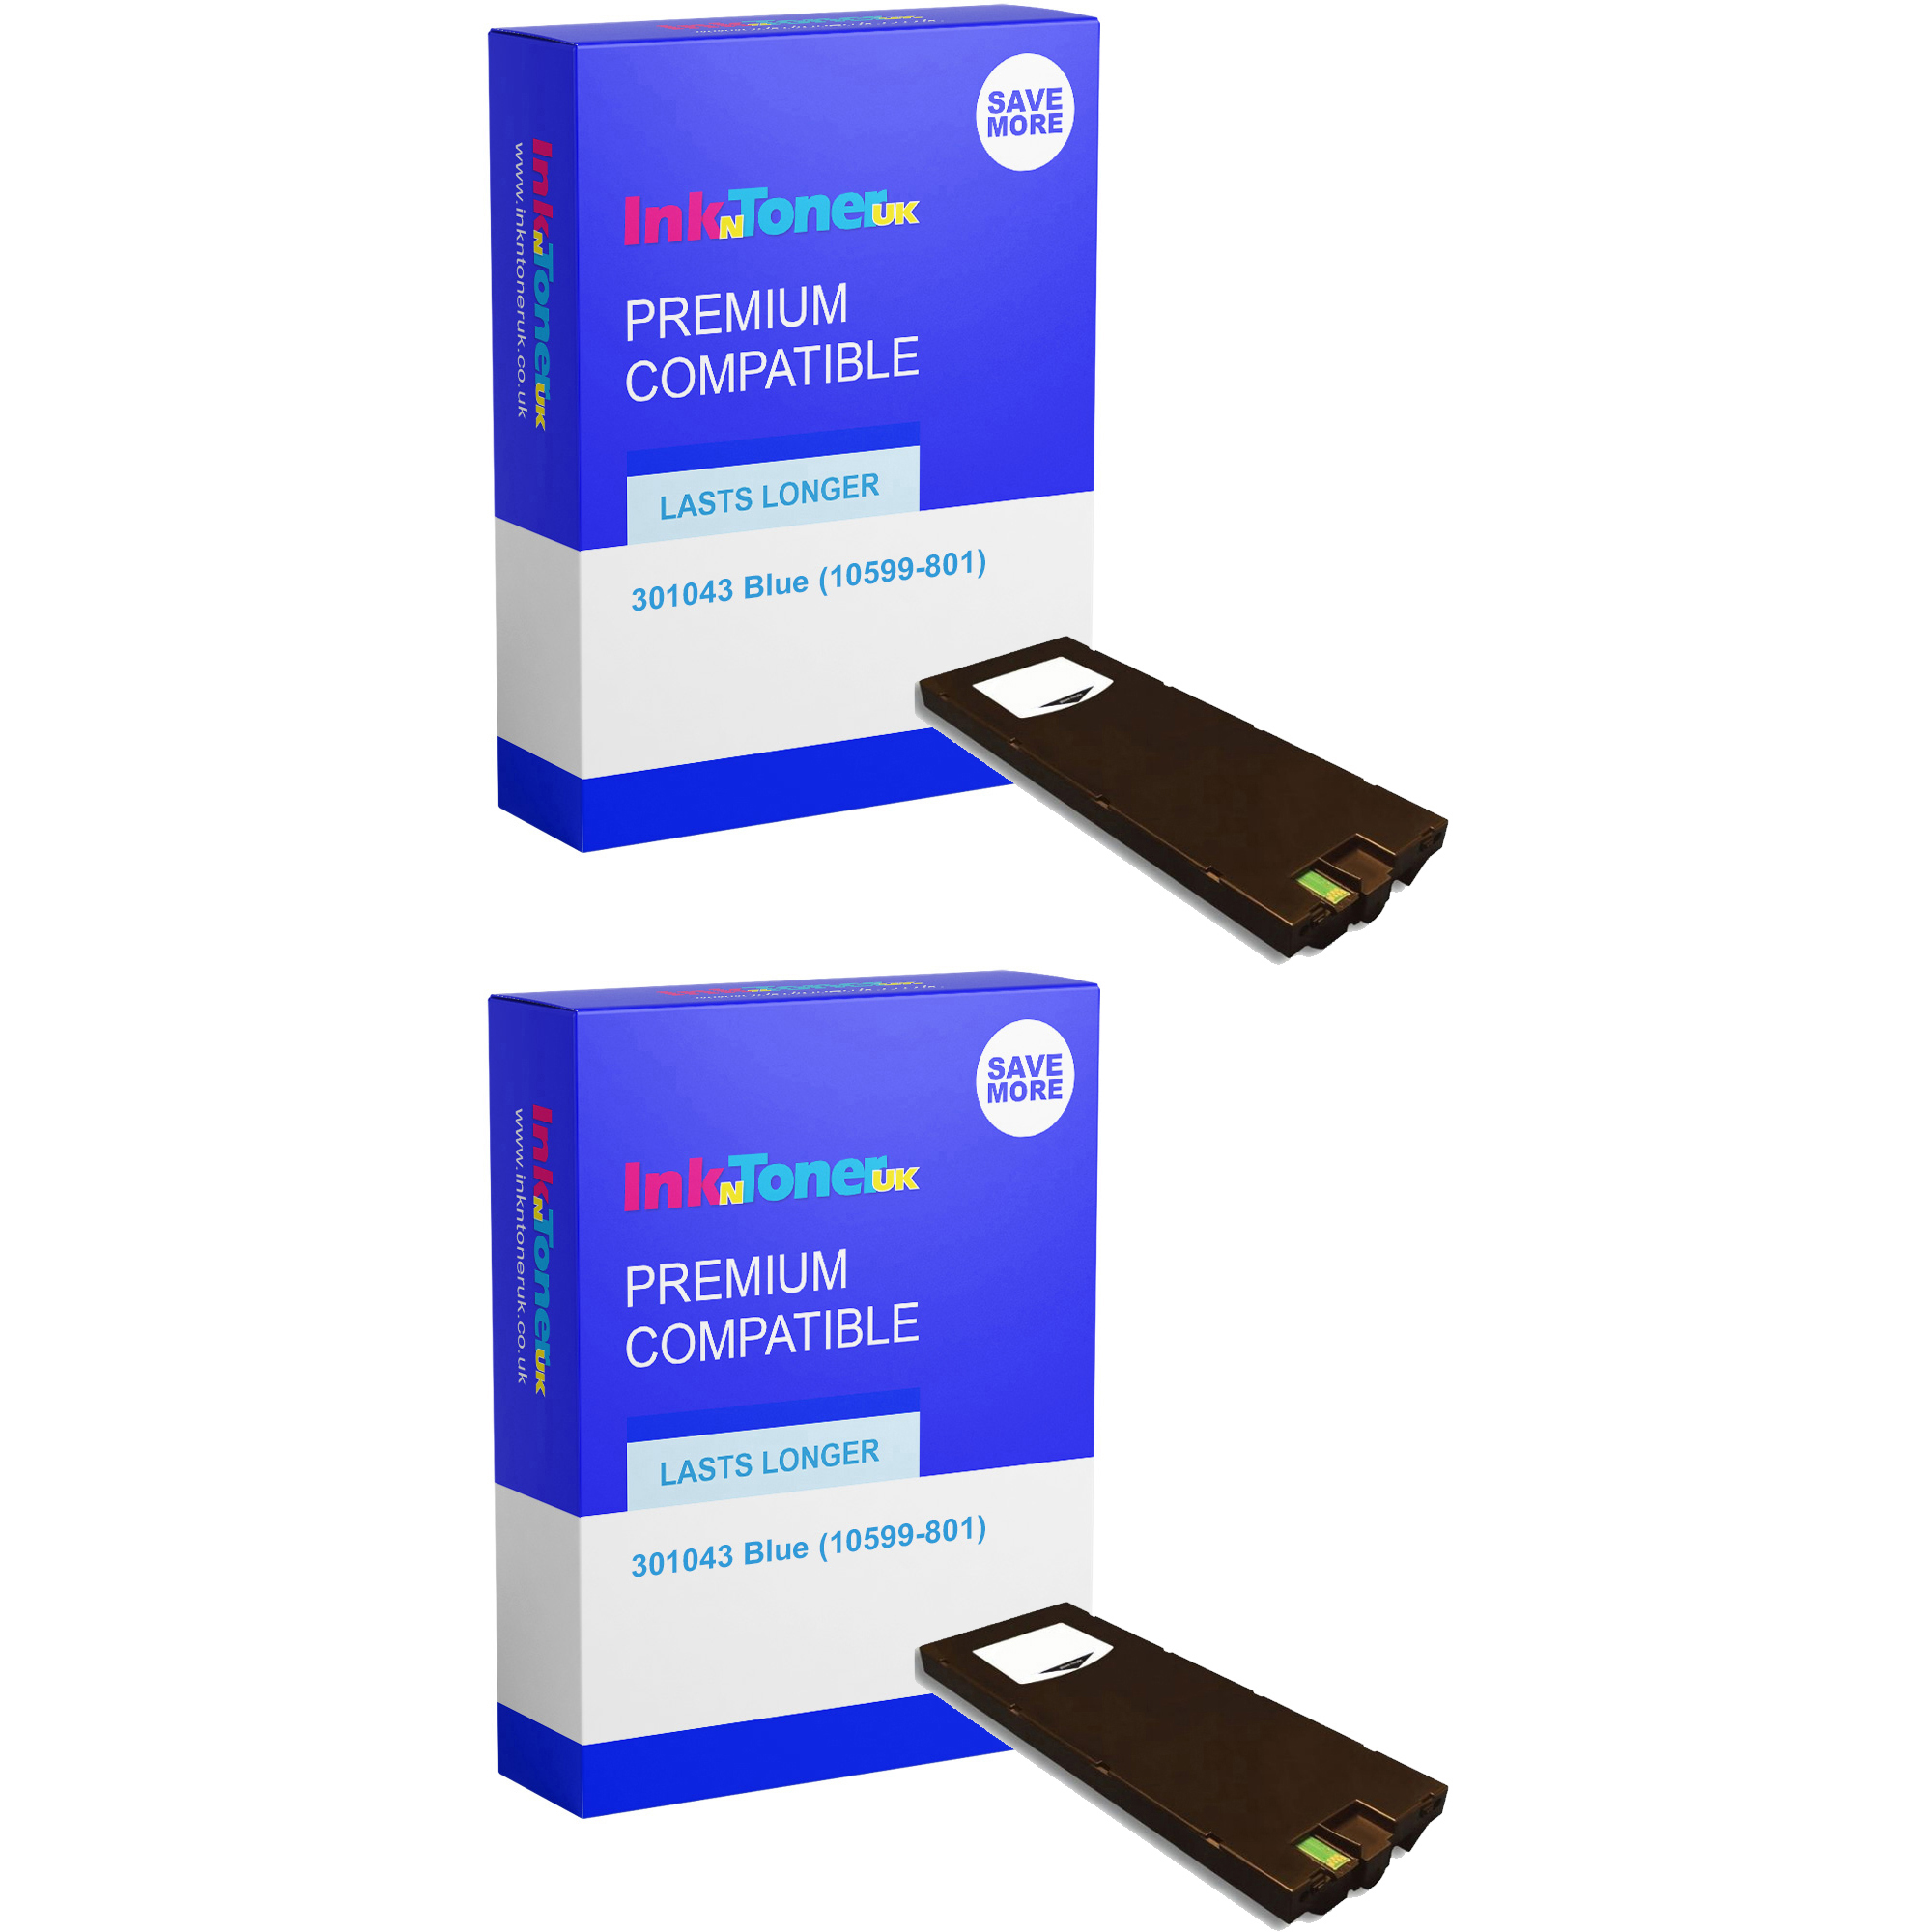 Premium Compatible Neopost 301043 Blue Twin Pack Franking Ink Cartridges (10599-801)